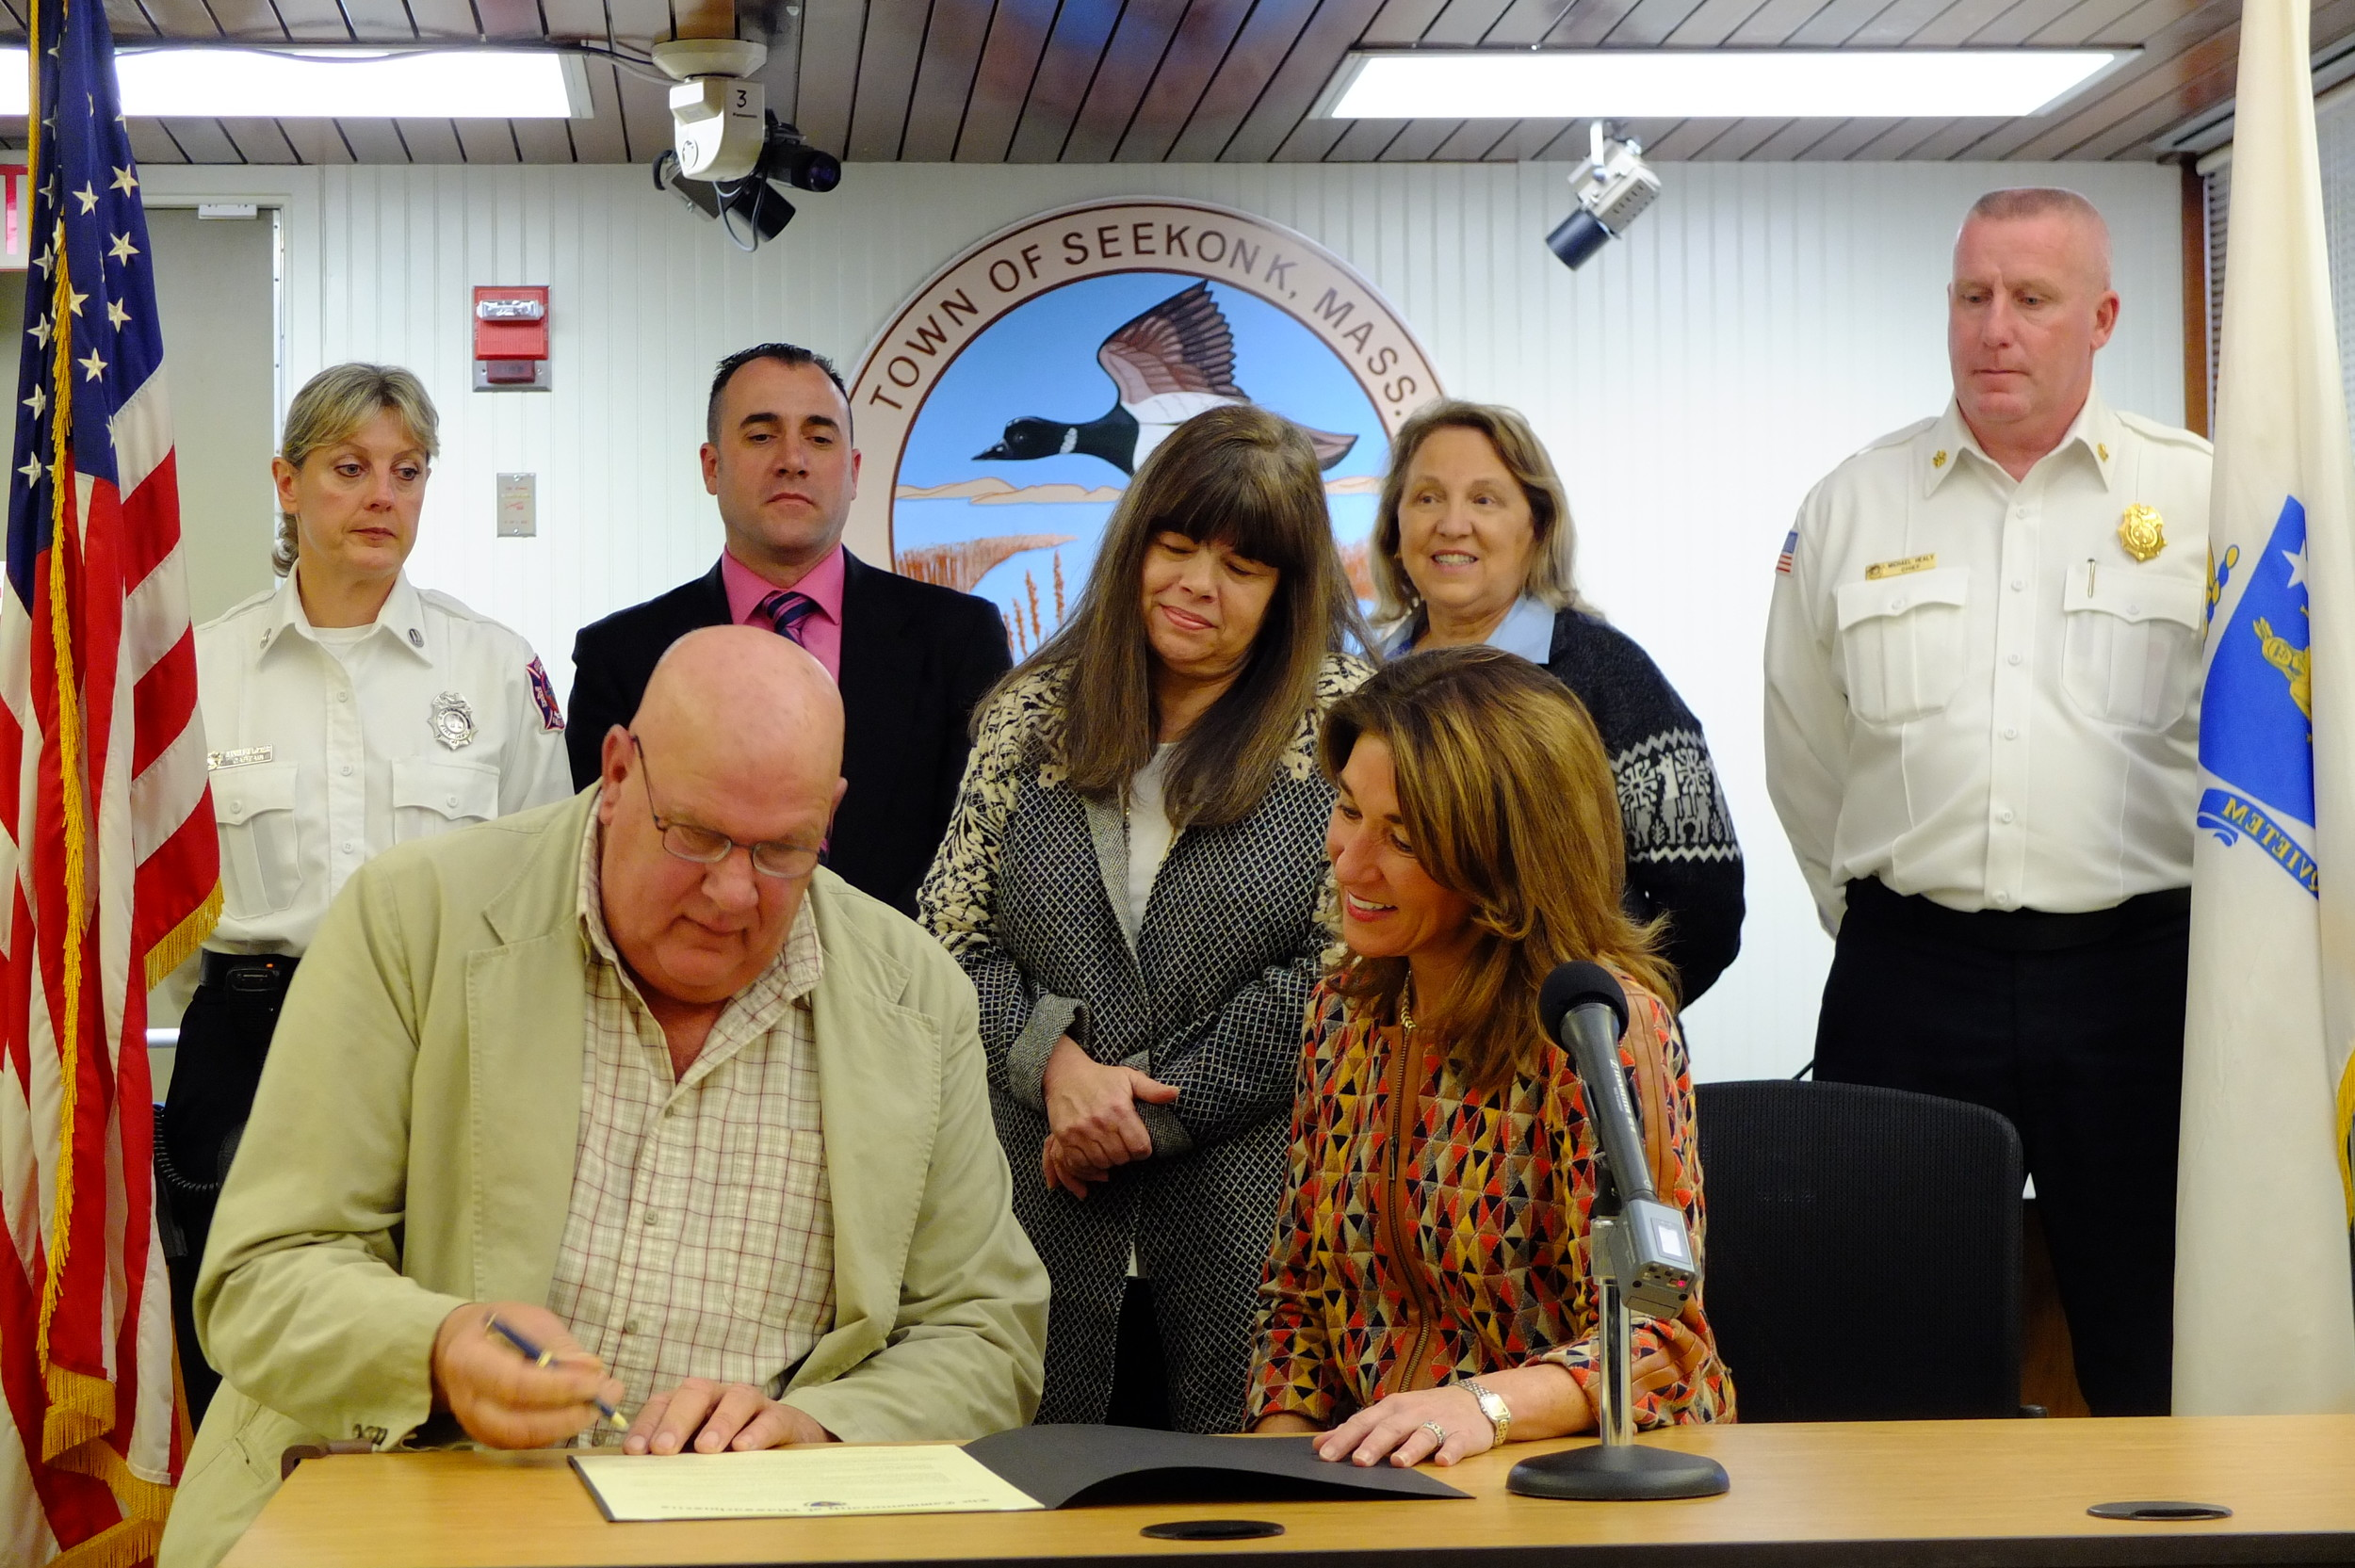 Seekonk Signs Community Compact: Selectman David Perry and Lt. Governor Karyn Polito sign the Community Compact as Rehoboth Town Administrator Helen Dennen looks on.  Standing behind them are (L to R) Seekonk FIre Capt. Sandra Miller, Seekonk Selectman Nelson Almeida, Seekonk Selectwoman Michelle Hines, and Seekonk Fire Chief Michael Healy.